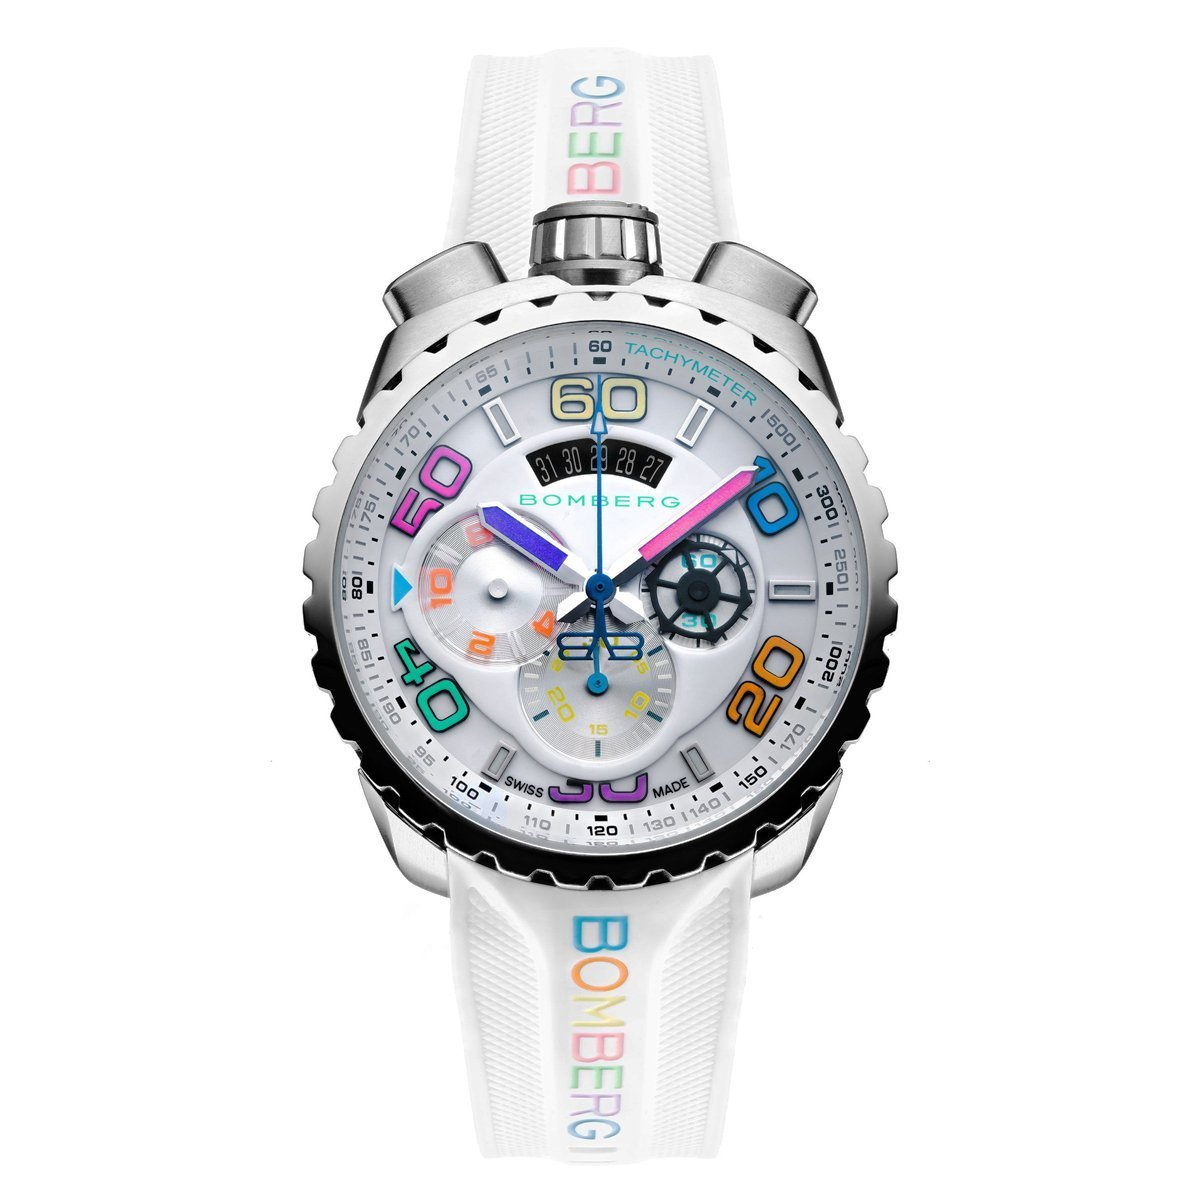 Bomberg BOLT-68 Chronograph White - Watches & Crystals